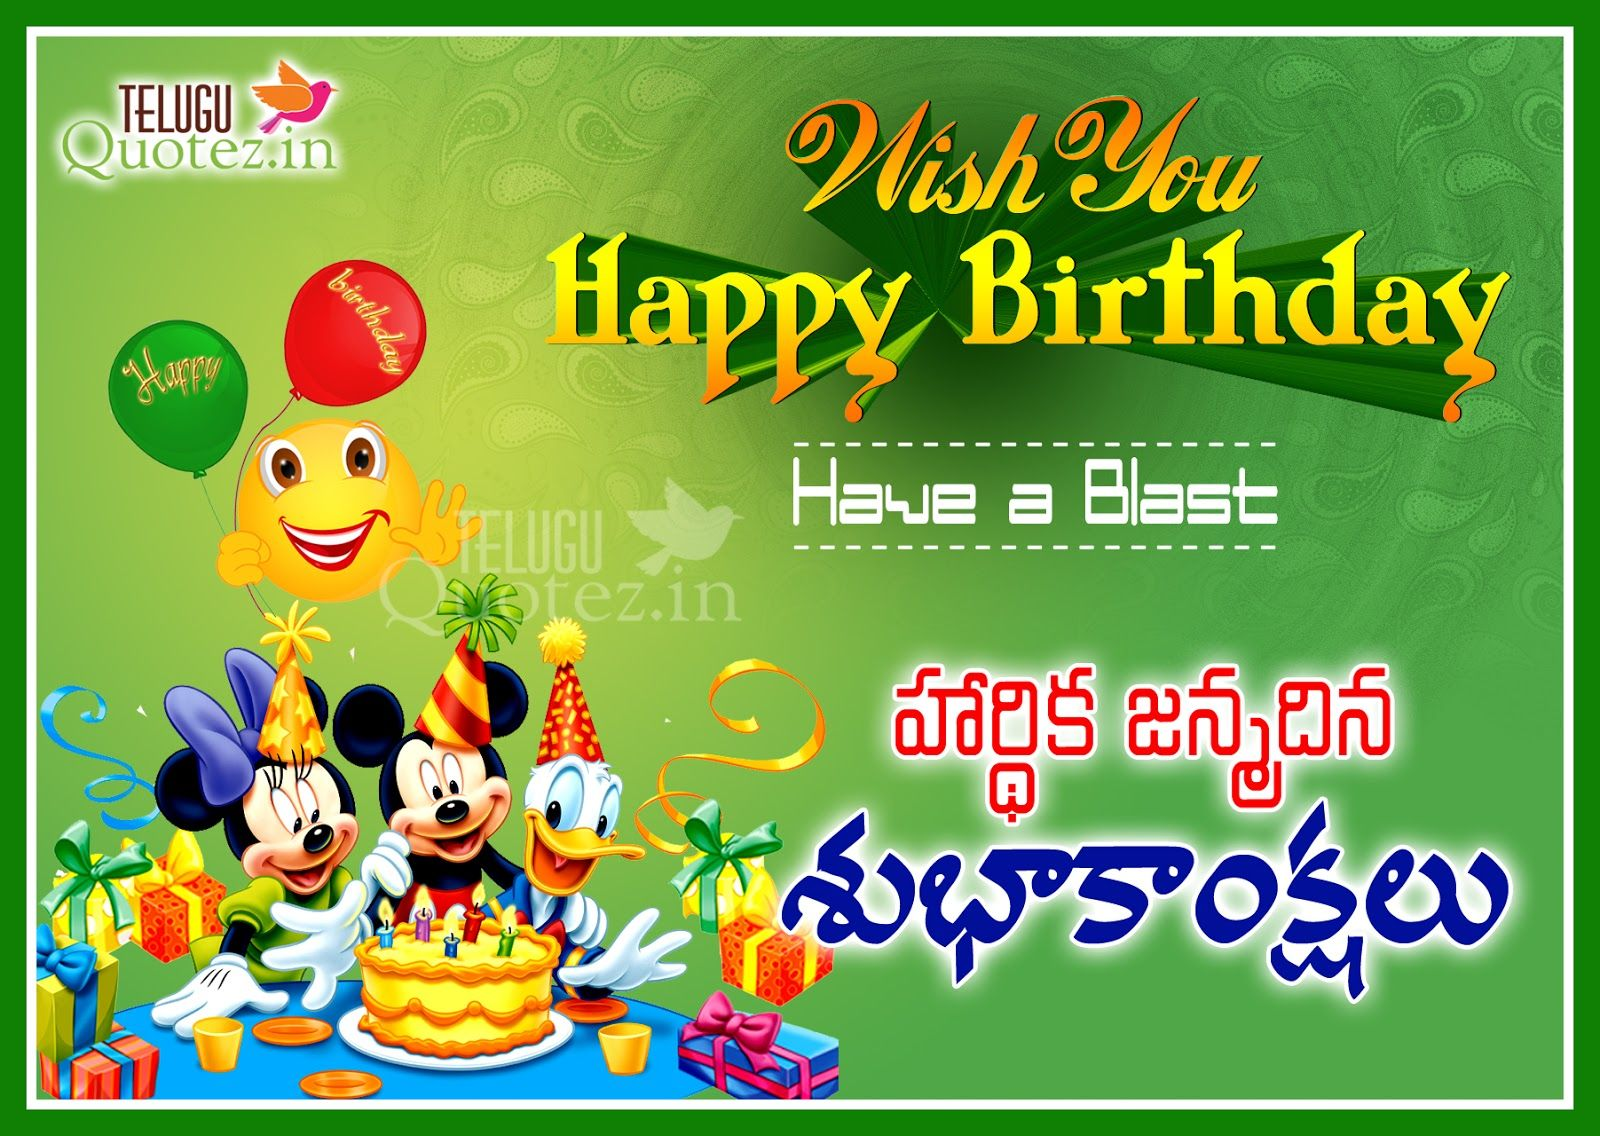 Telugu Happy Birthday Wishes Quotes Hd Wallpapers Birthday